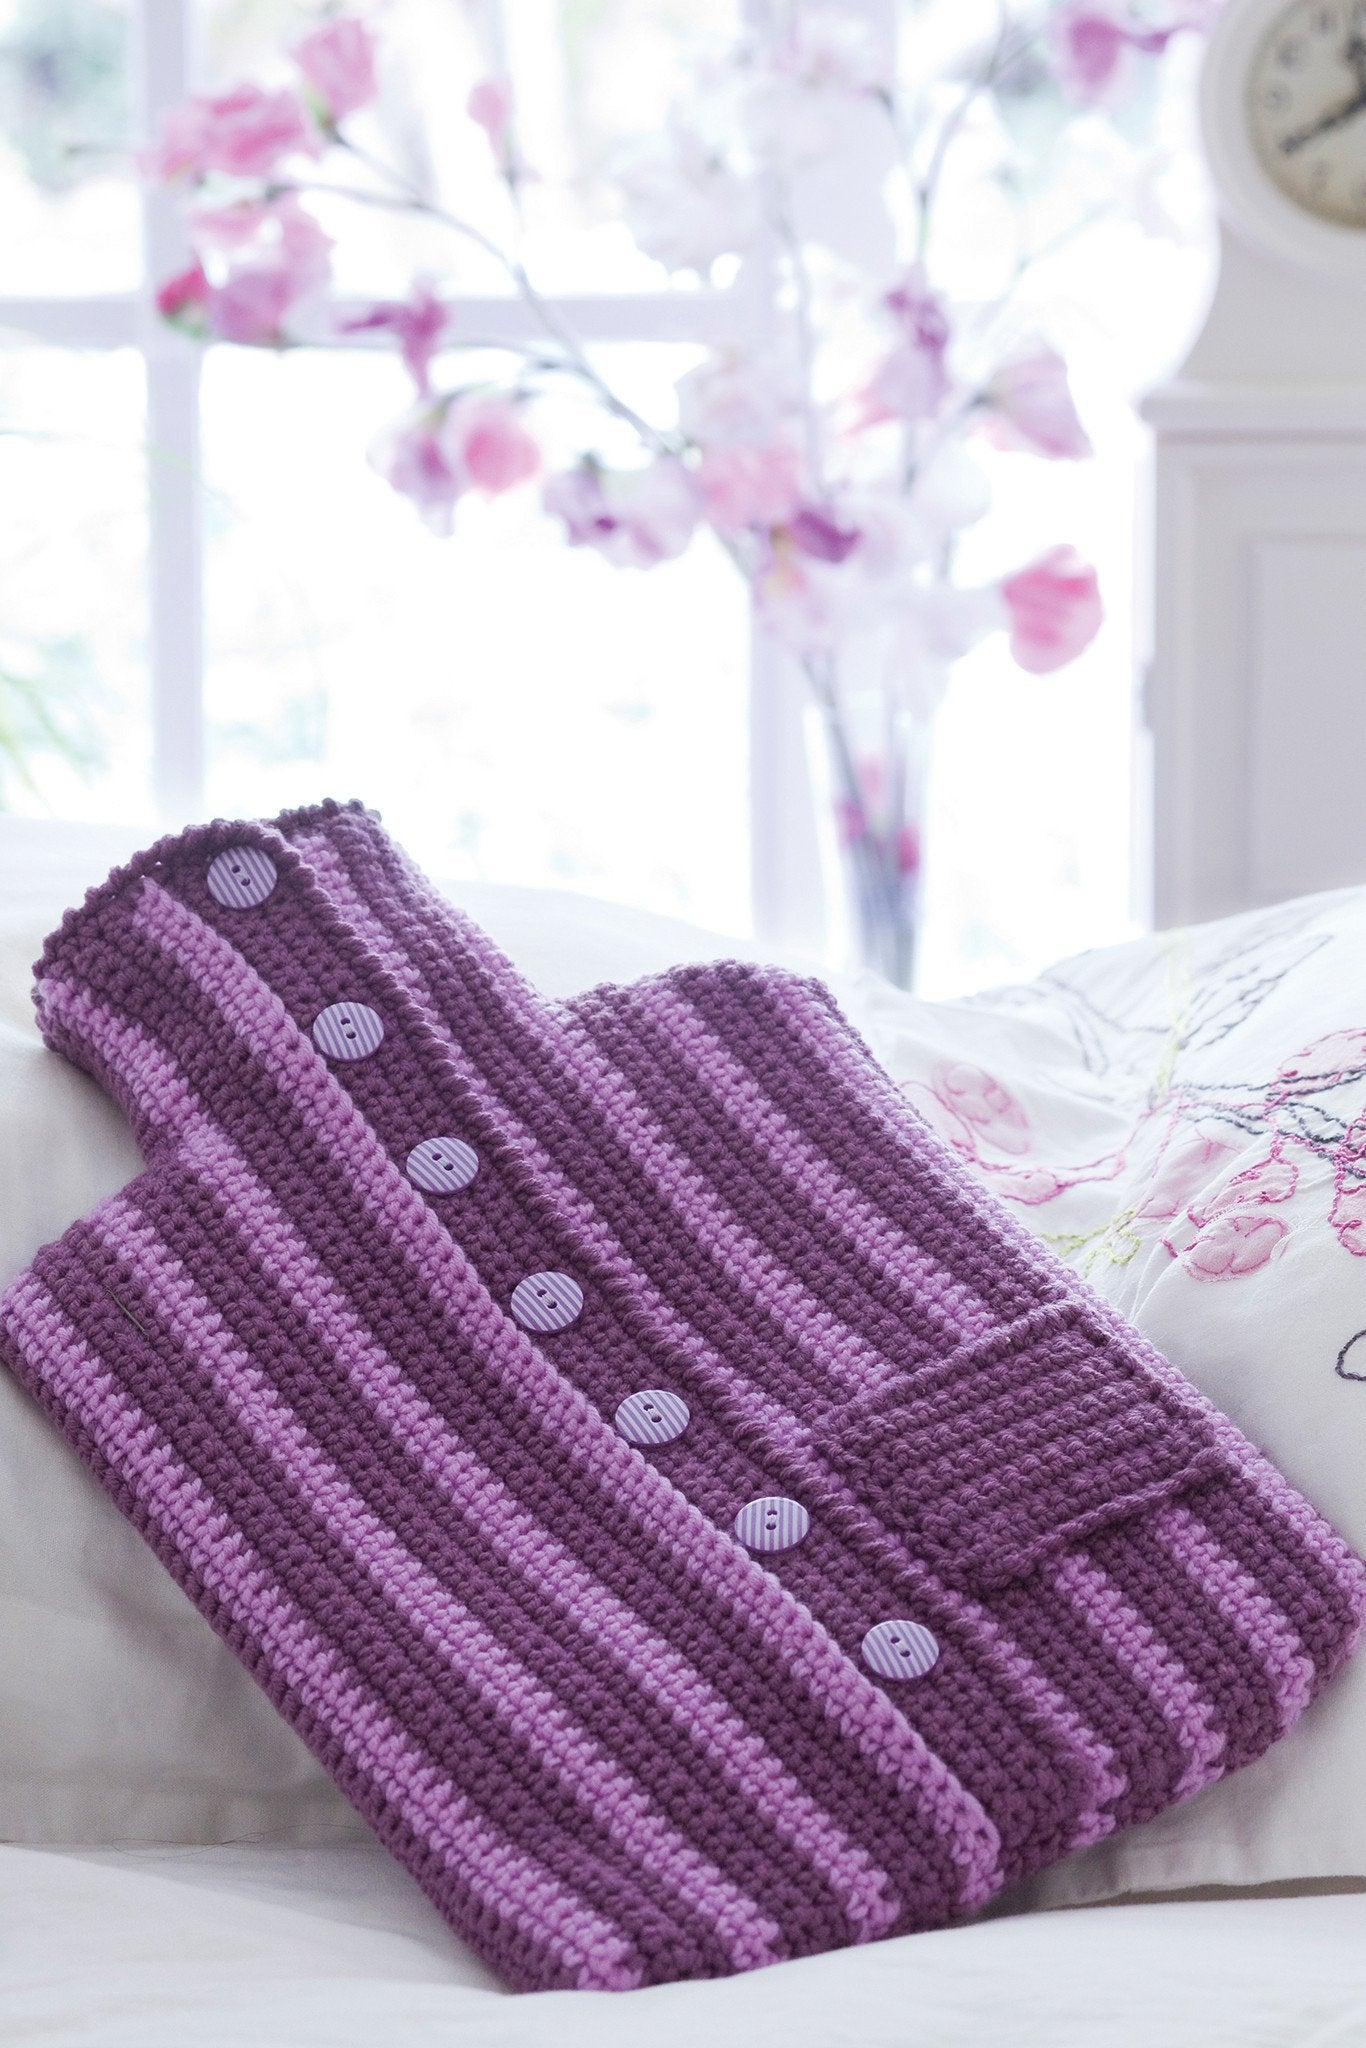 Free Knitting Pattern For Small Hot Water Bottle Cover : Hot Water Bottle Cover Crochet Pattern   The Knitting Network